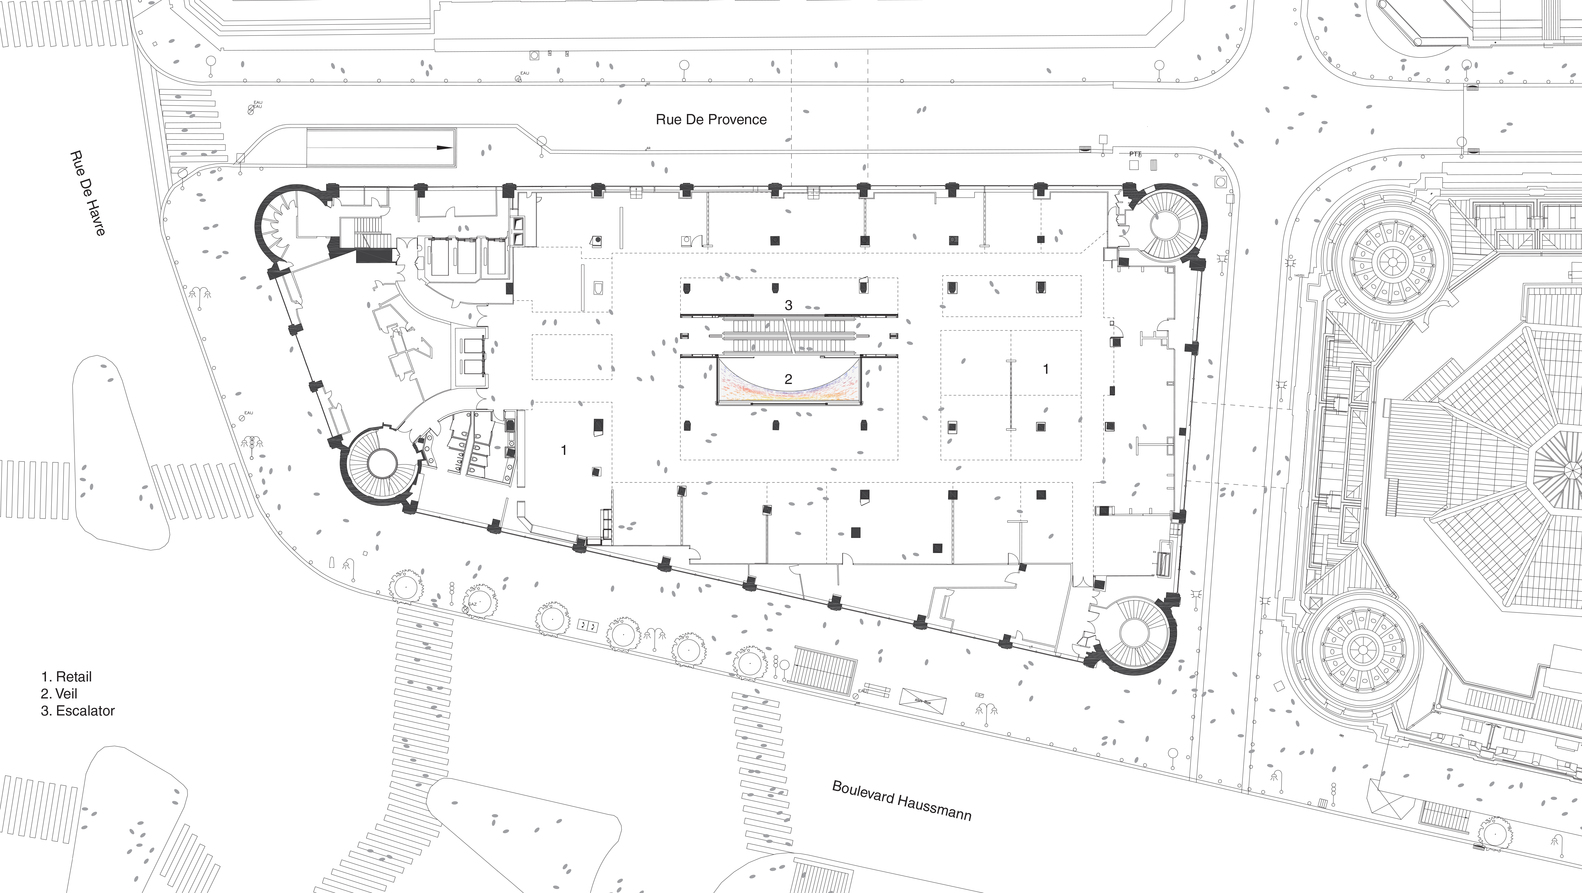 Gallery Of Printemps Haussmann Verticalit Uufie 32 Escalator Schematic Verticalit5f Plan